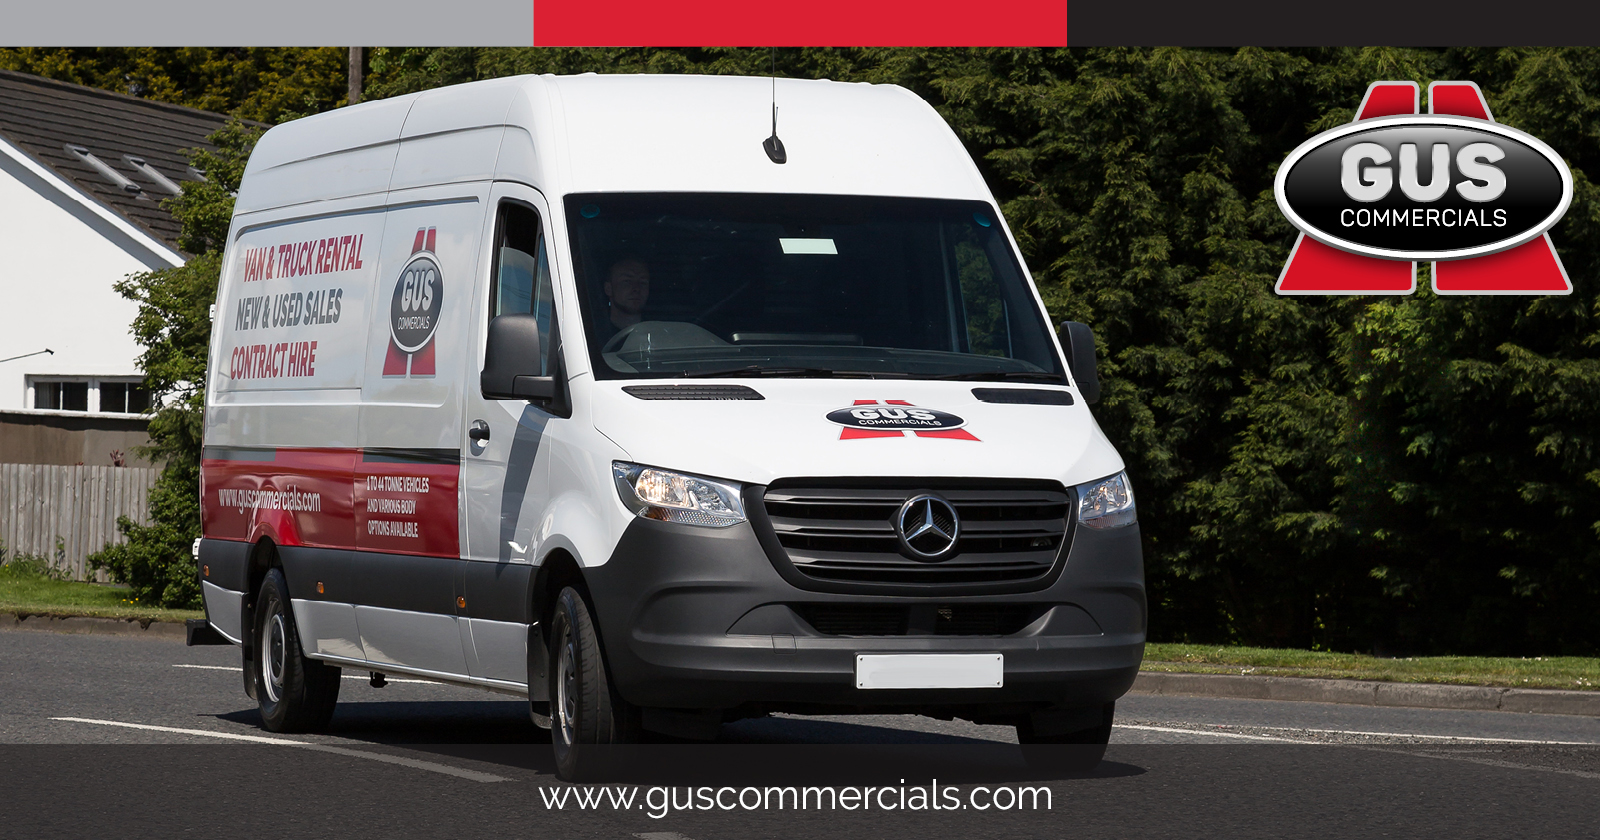 New Mercedes-Benz Sprinter Van for Gus Commercials' Rental Fleet